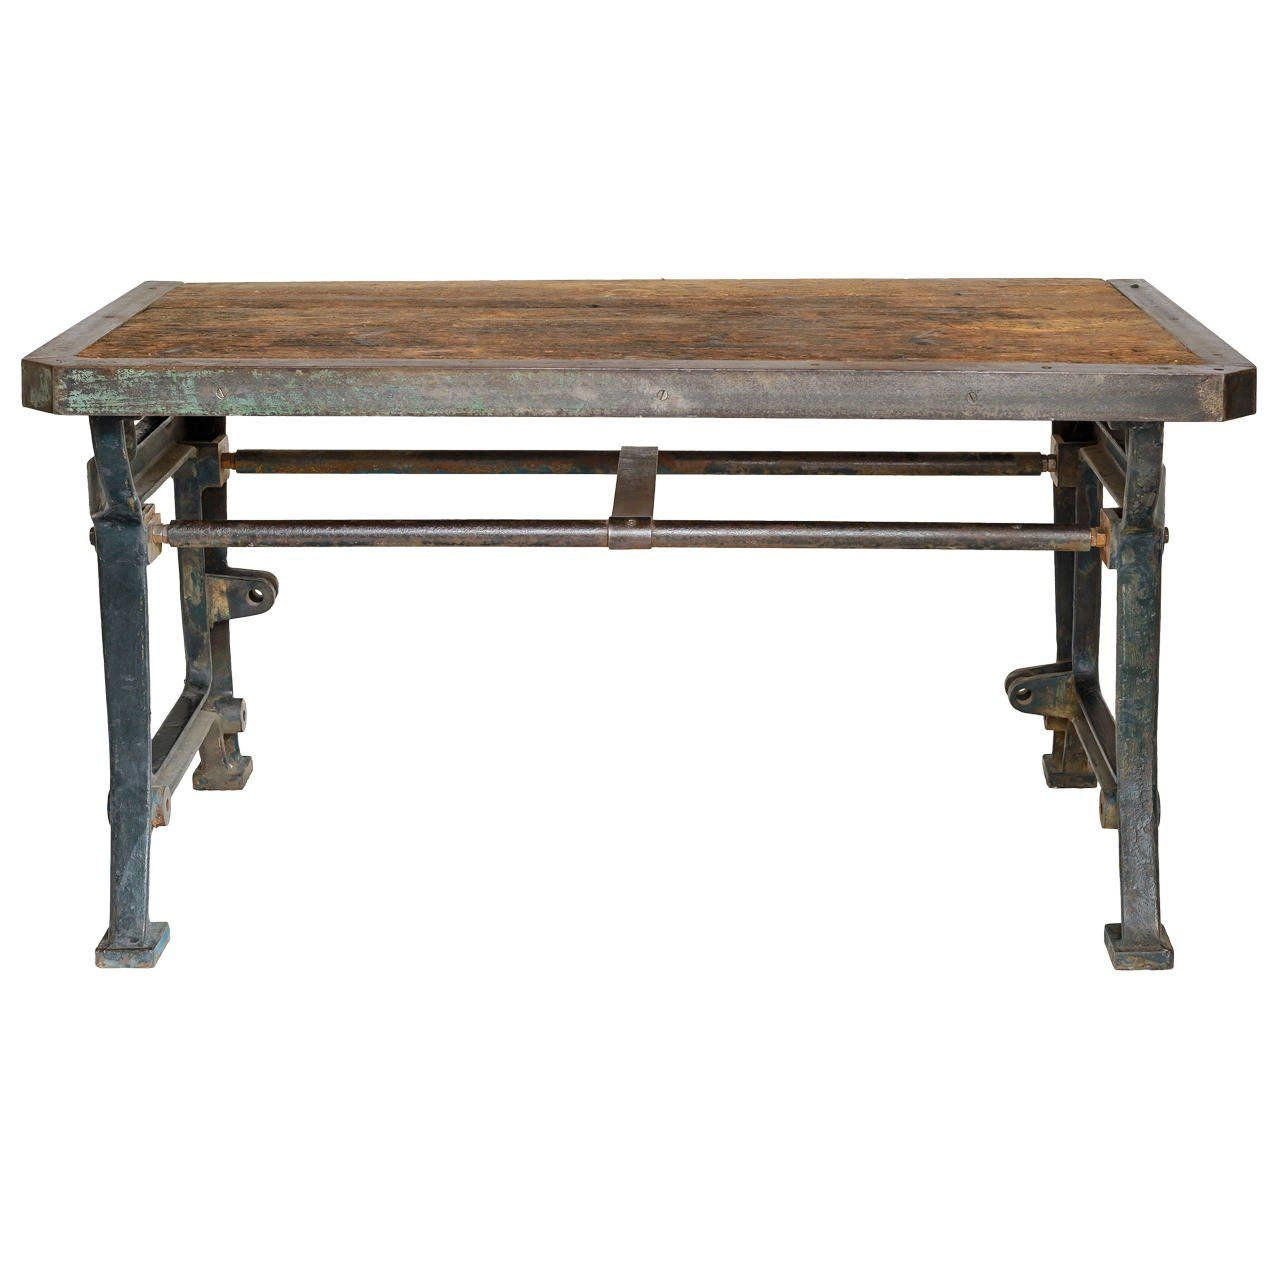 19th Century French Industrial Table #frenchindustrial